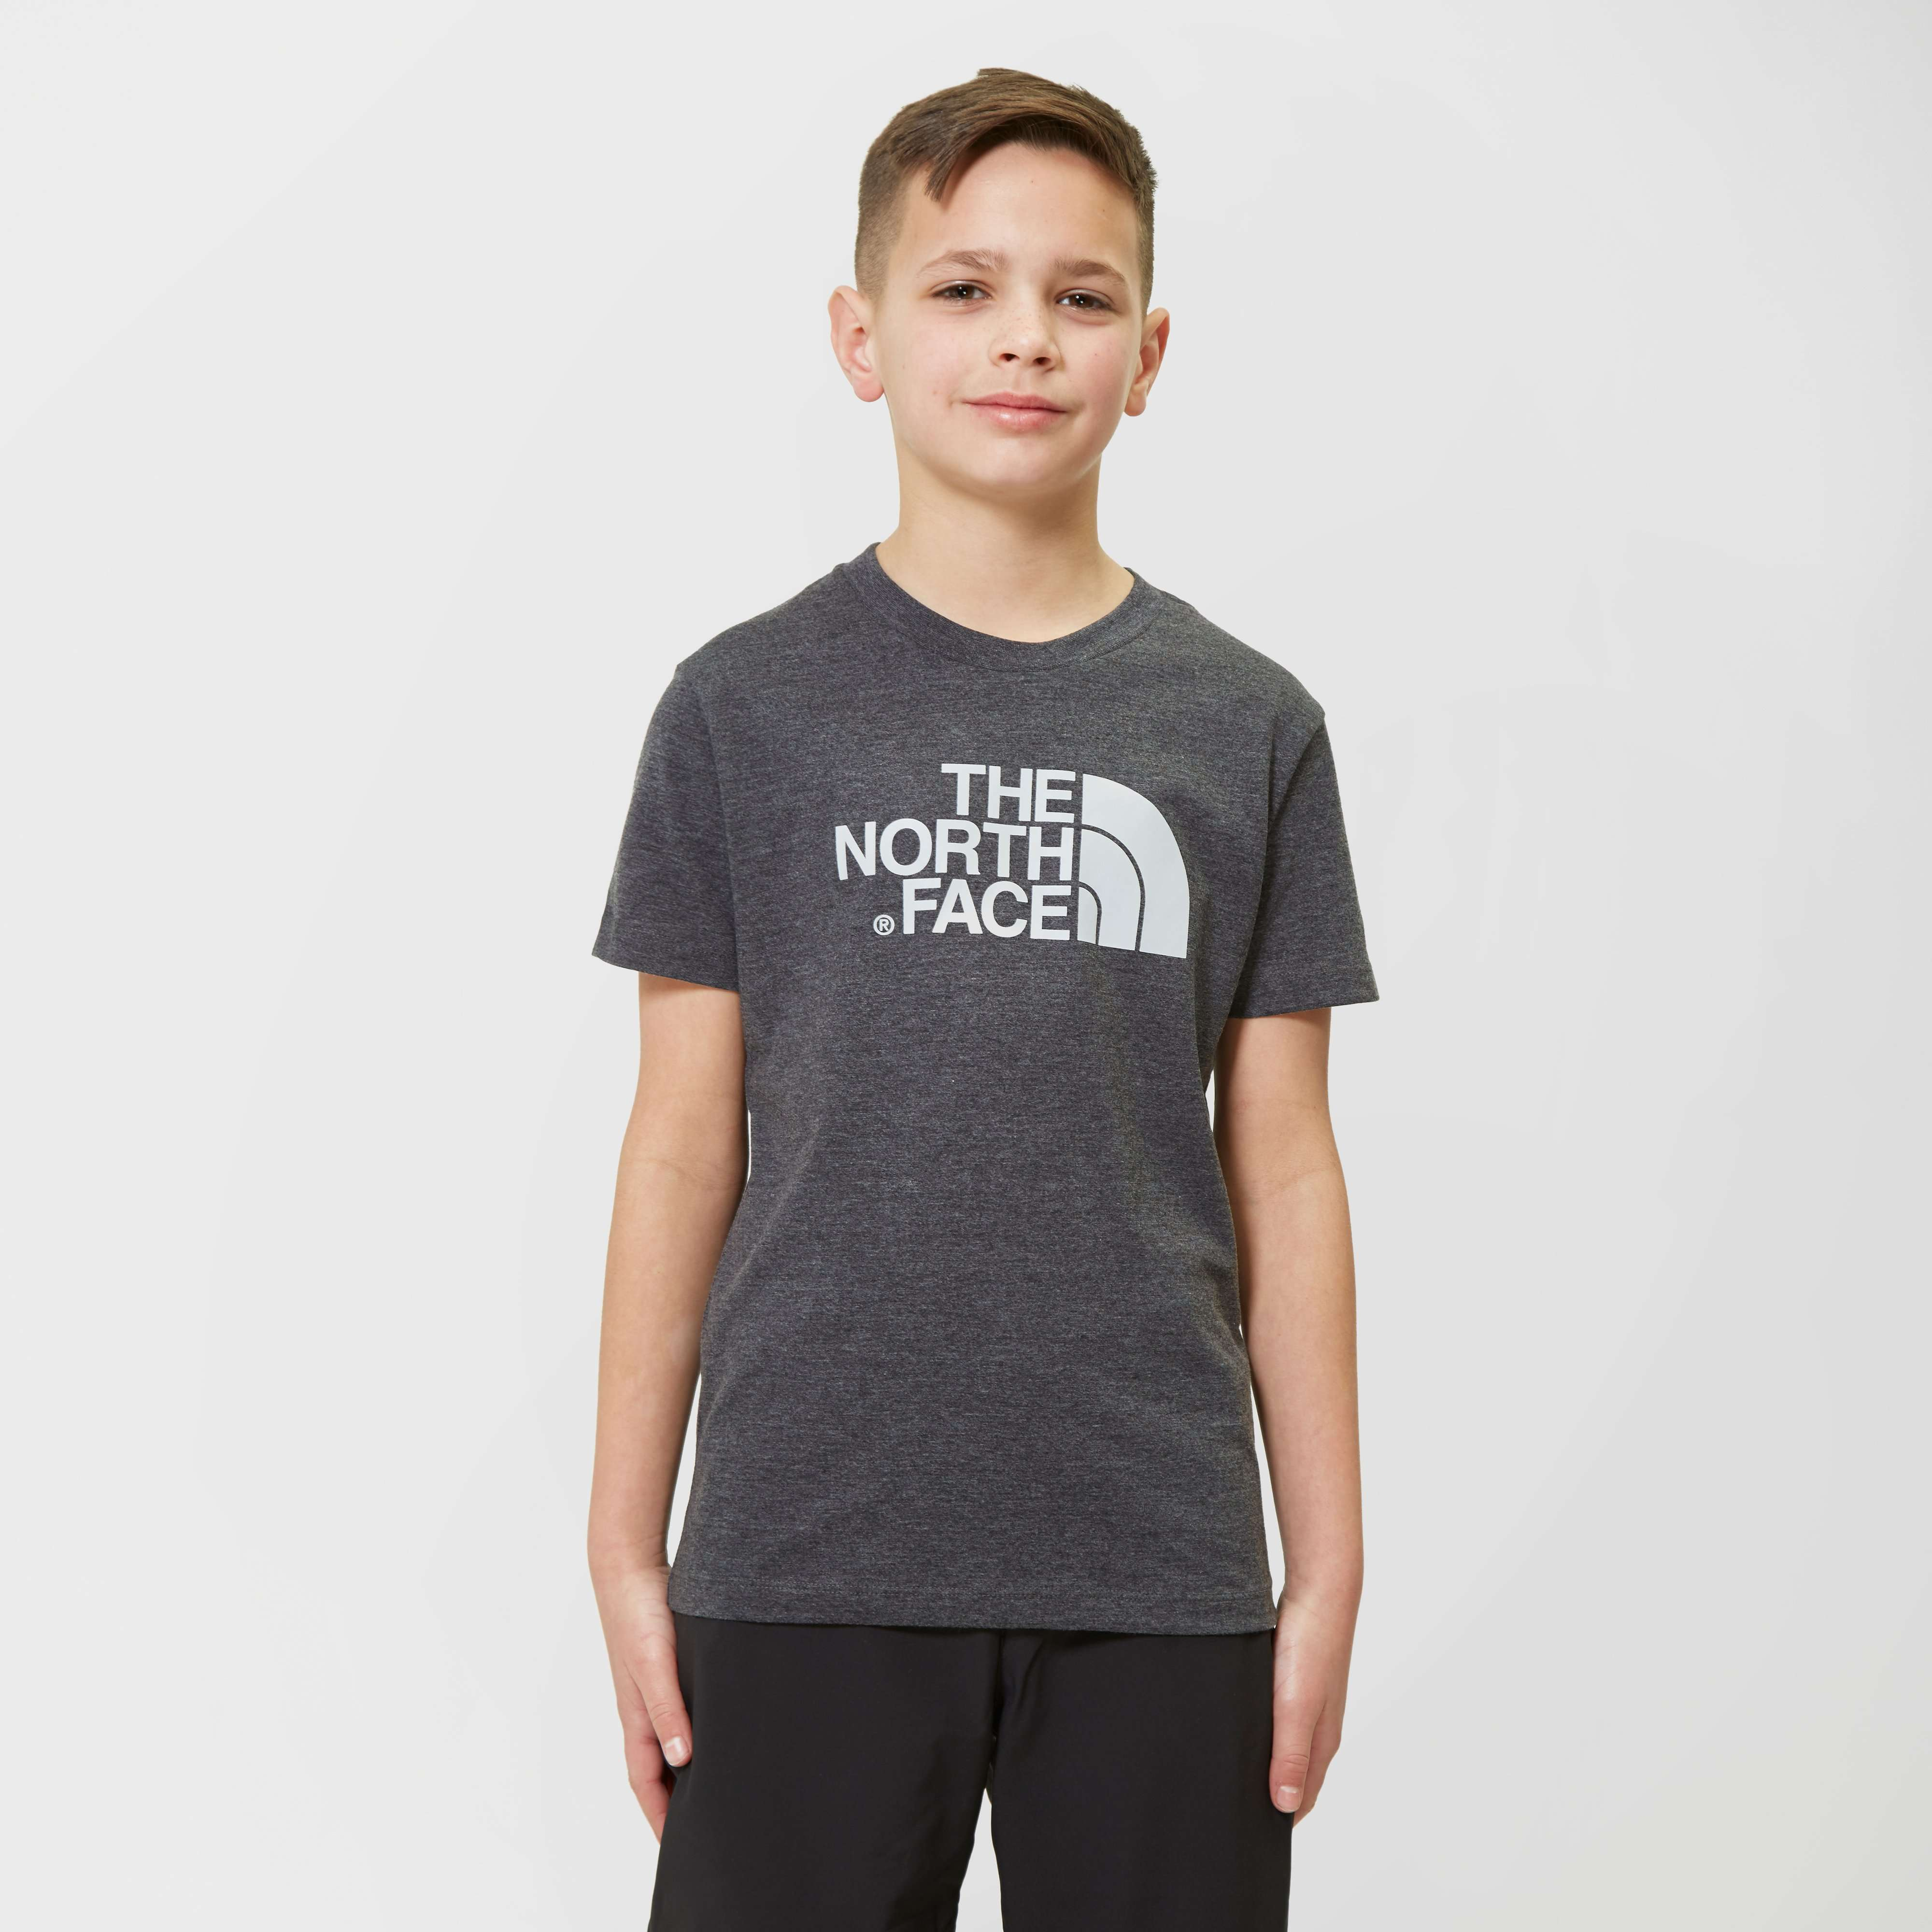 THE NORTH FACE Boys' Easy T-shirt